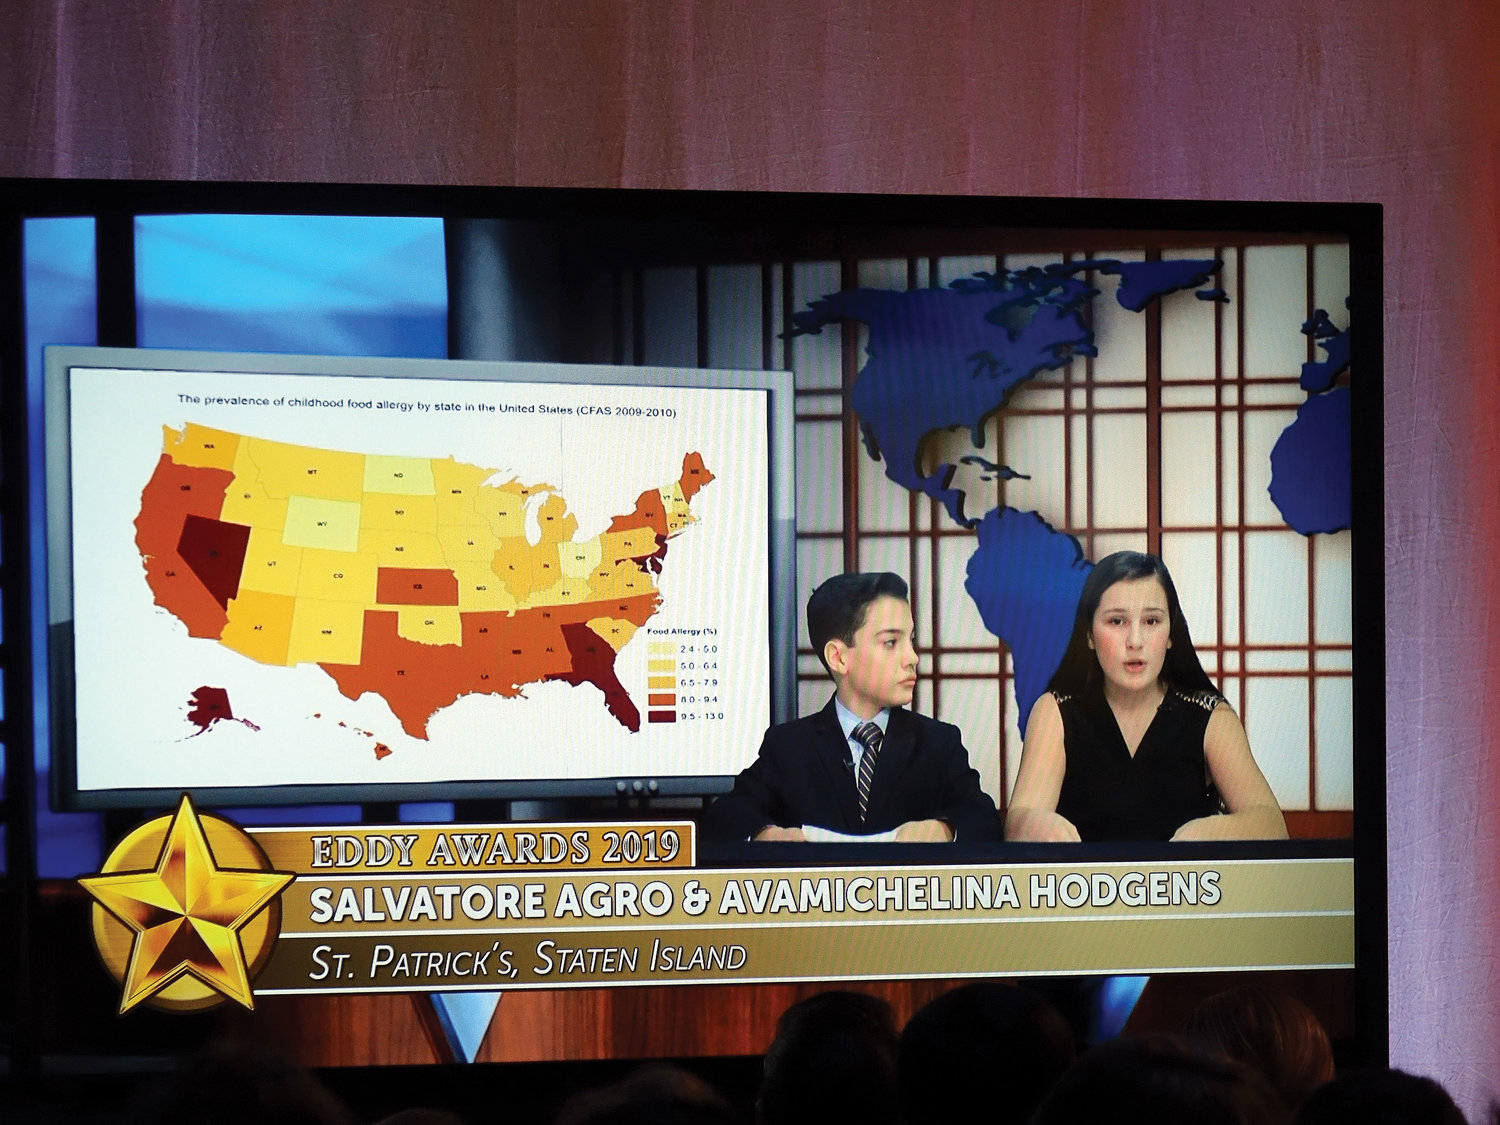 A broadcast is shown of the work of Eddy award-winning elementary anchorpersons Salvatore Agro and Avamichelina Hodgens of St. Patrick's School, Staten Island, during the 46th annual Eddy Awards May 17 at the ITV Studios in Yonkers.